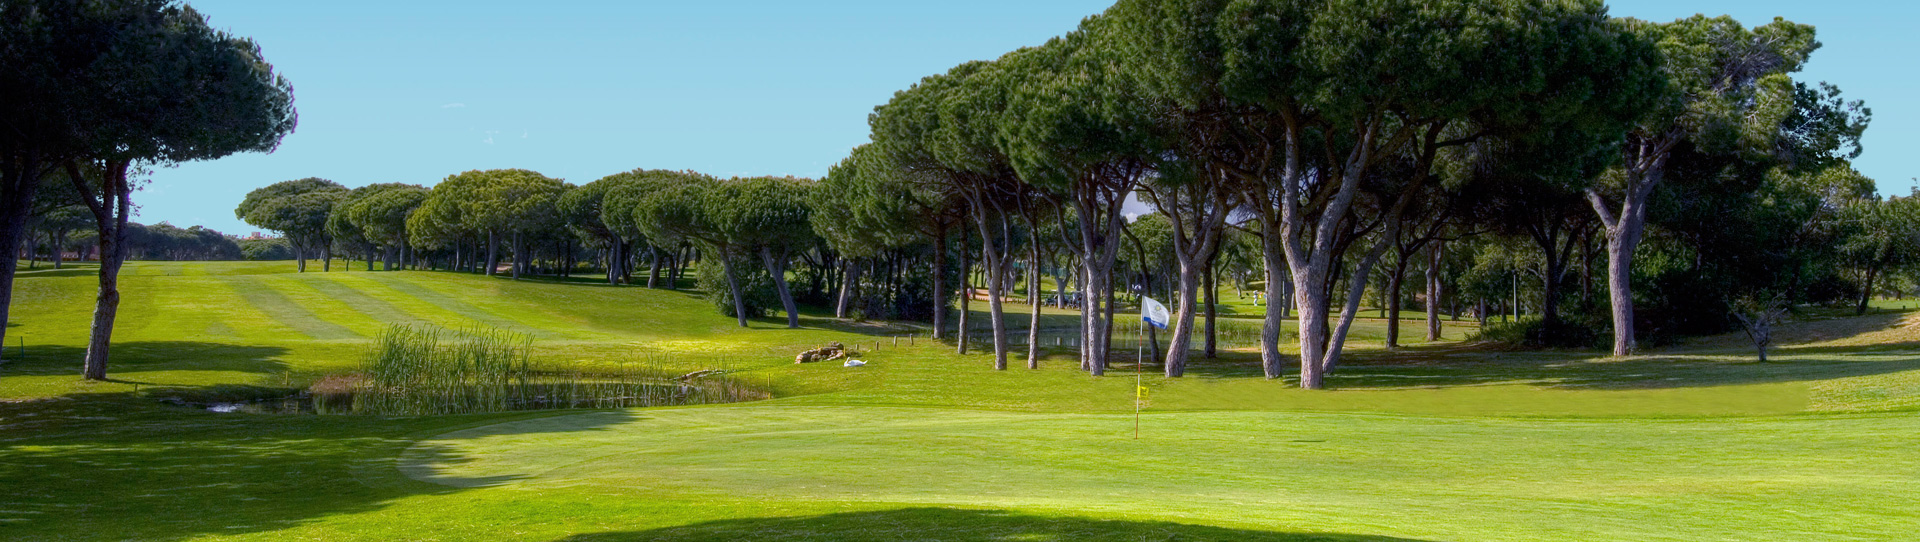 Vila Sol Golf Course - Photo 2